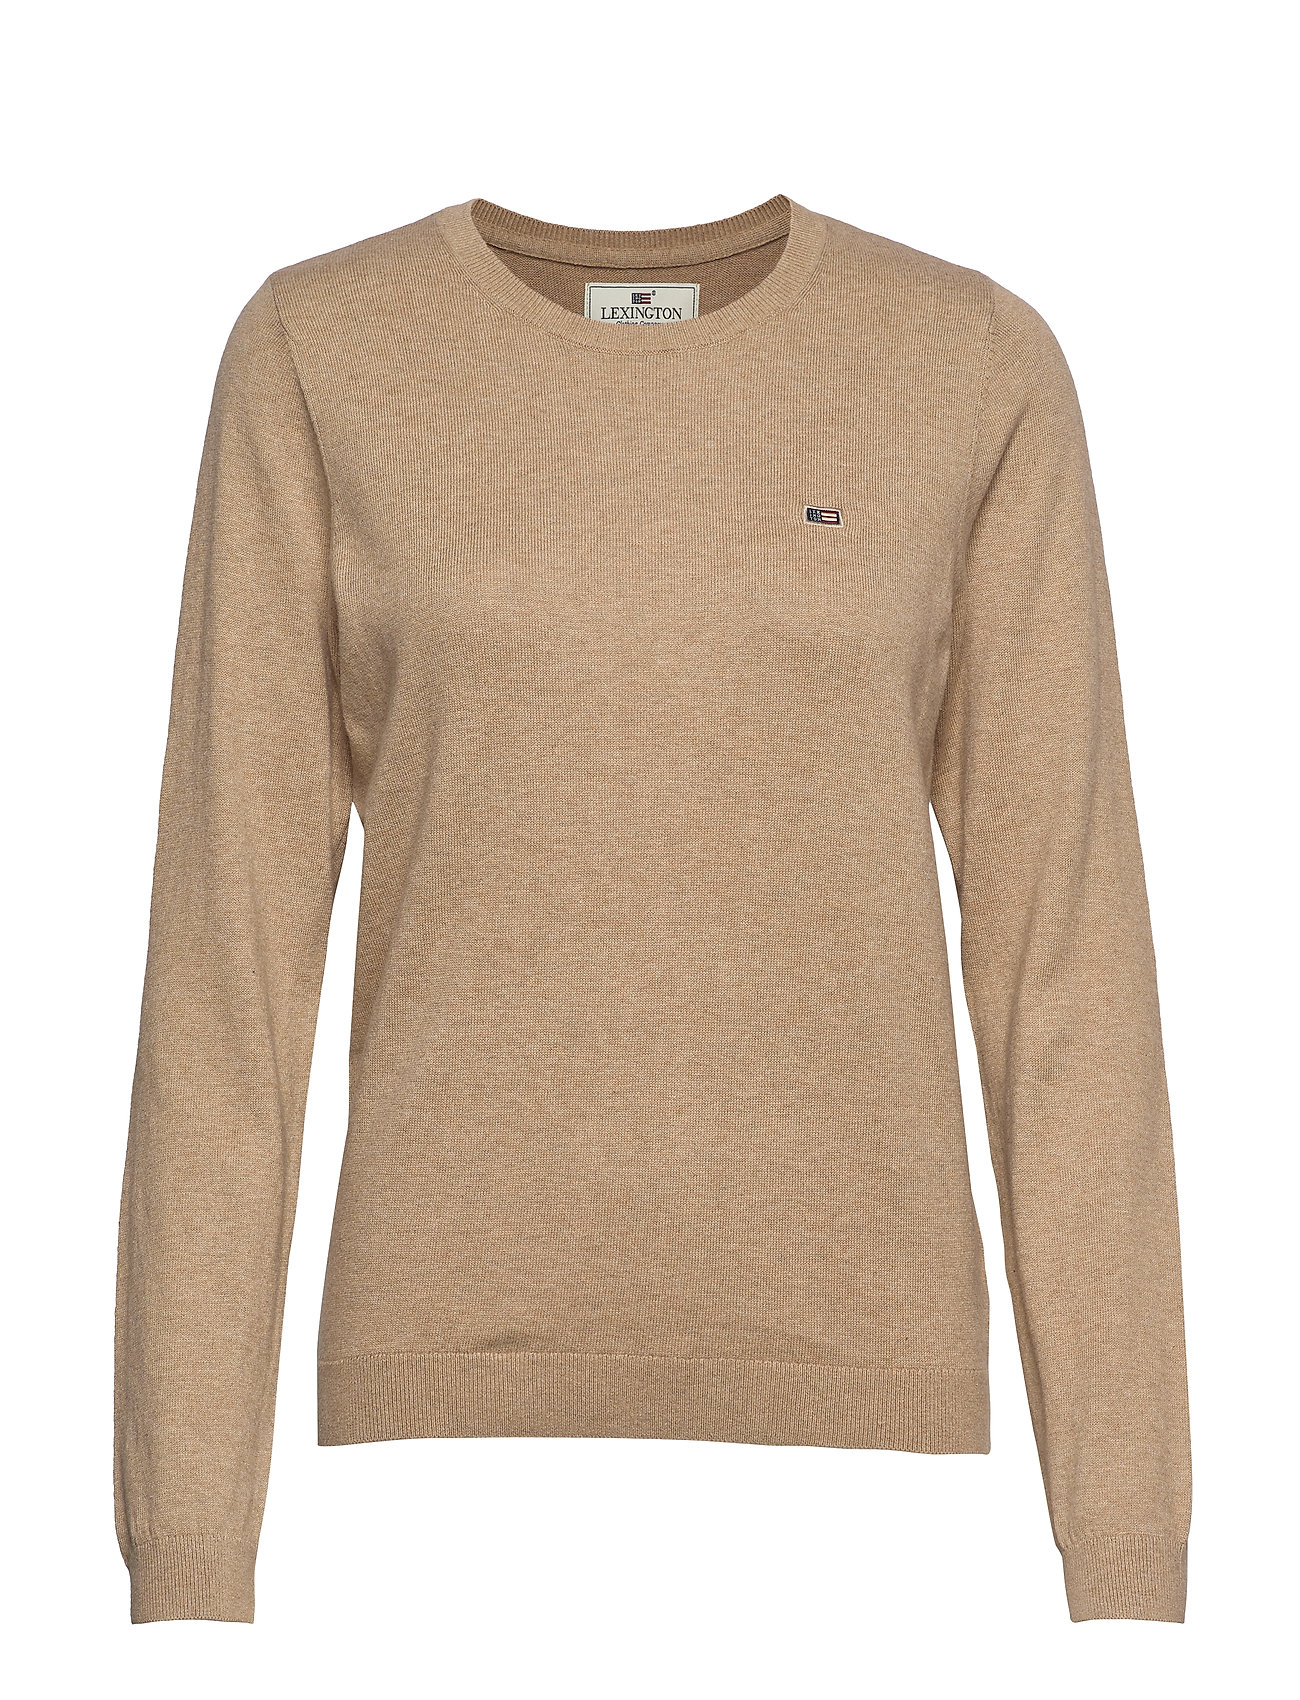 Lexington Clothing Marline Sweater - BEIGE MELANGE